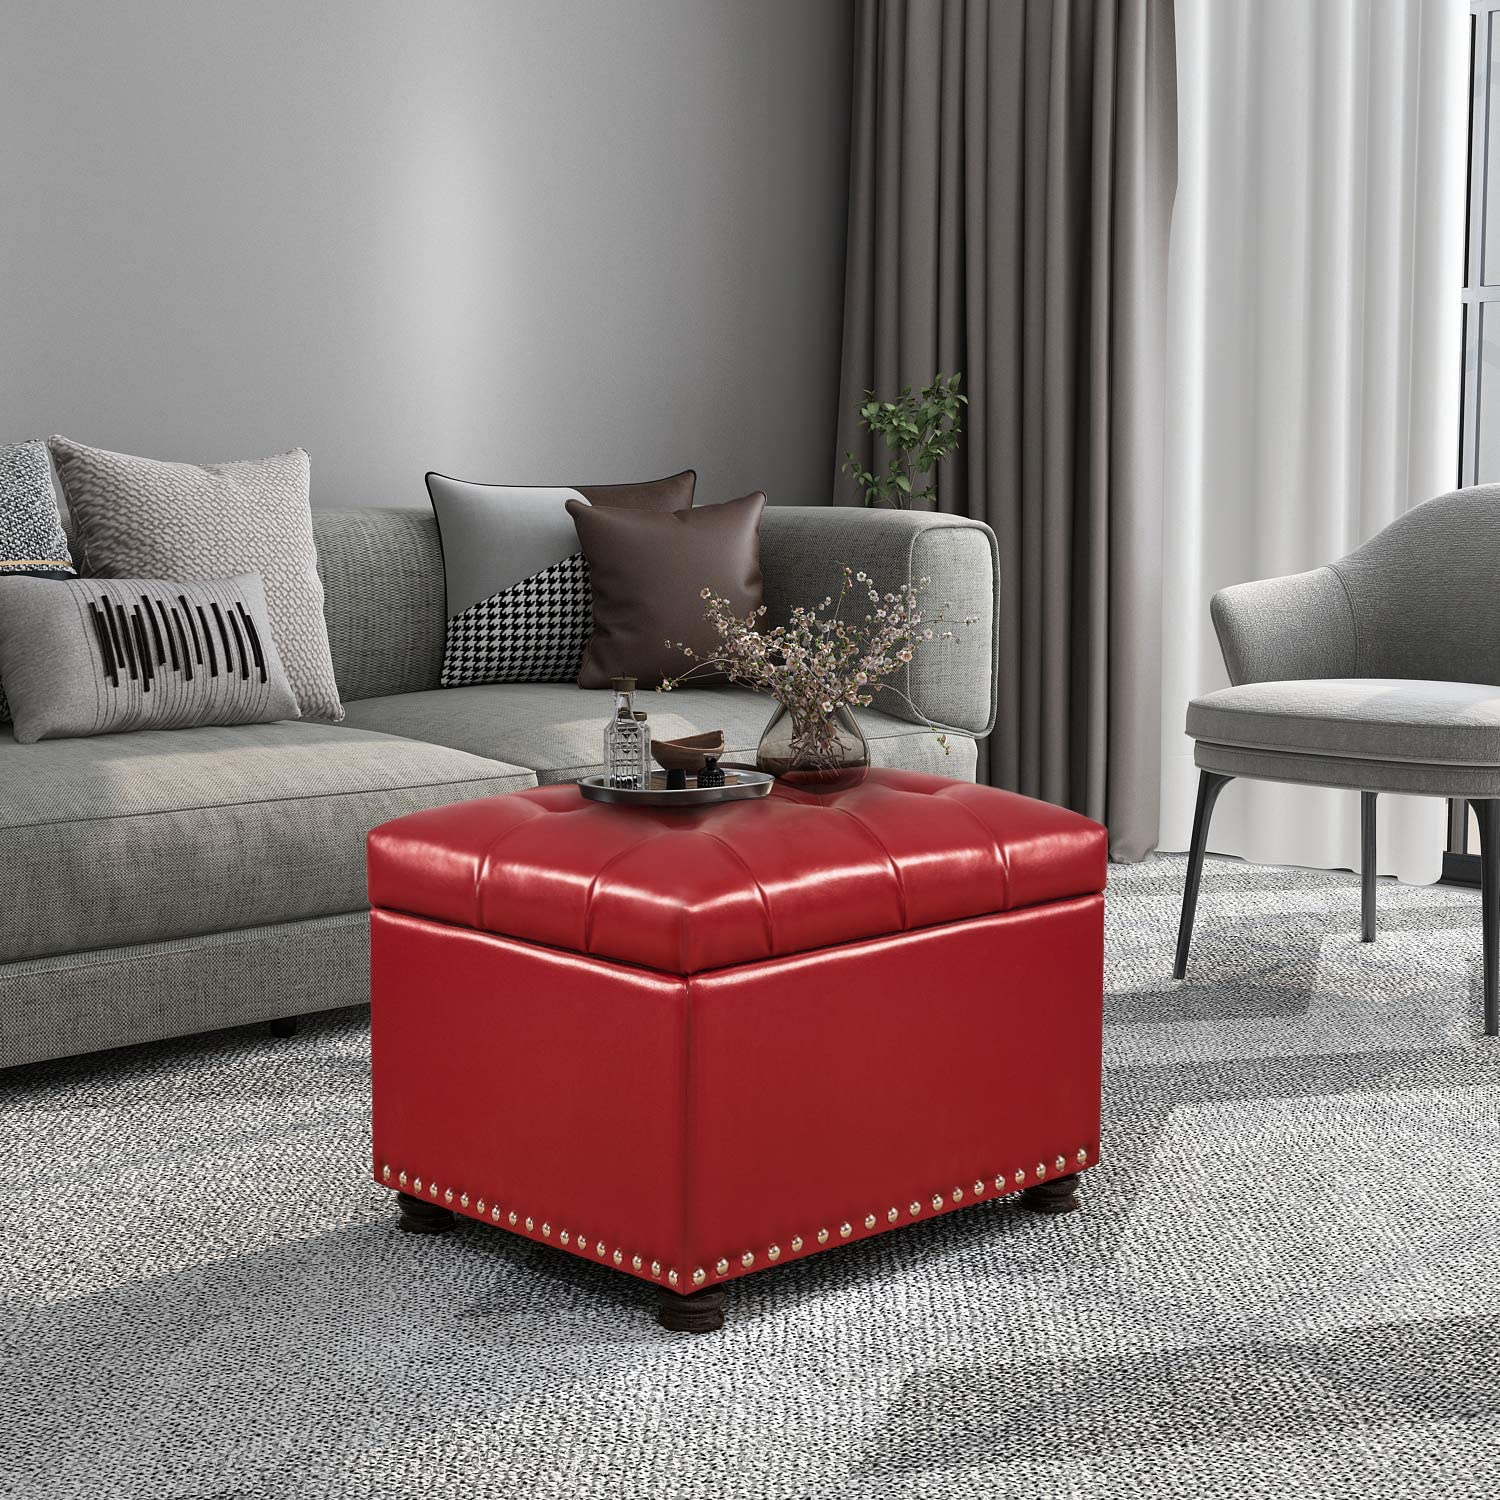 Homebeez Tufted Storage Ottoman Bench Stoo Leather Faux Choice Footrest Charlotte Mall